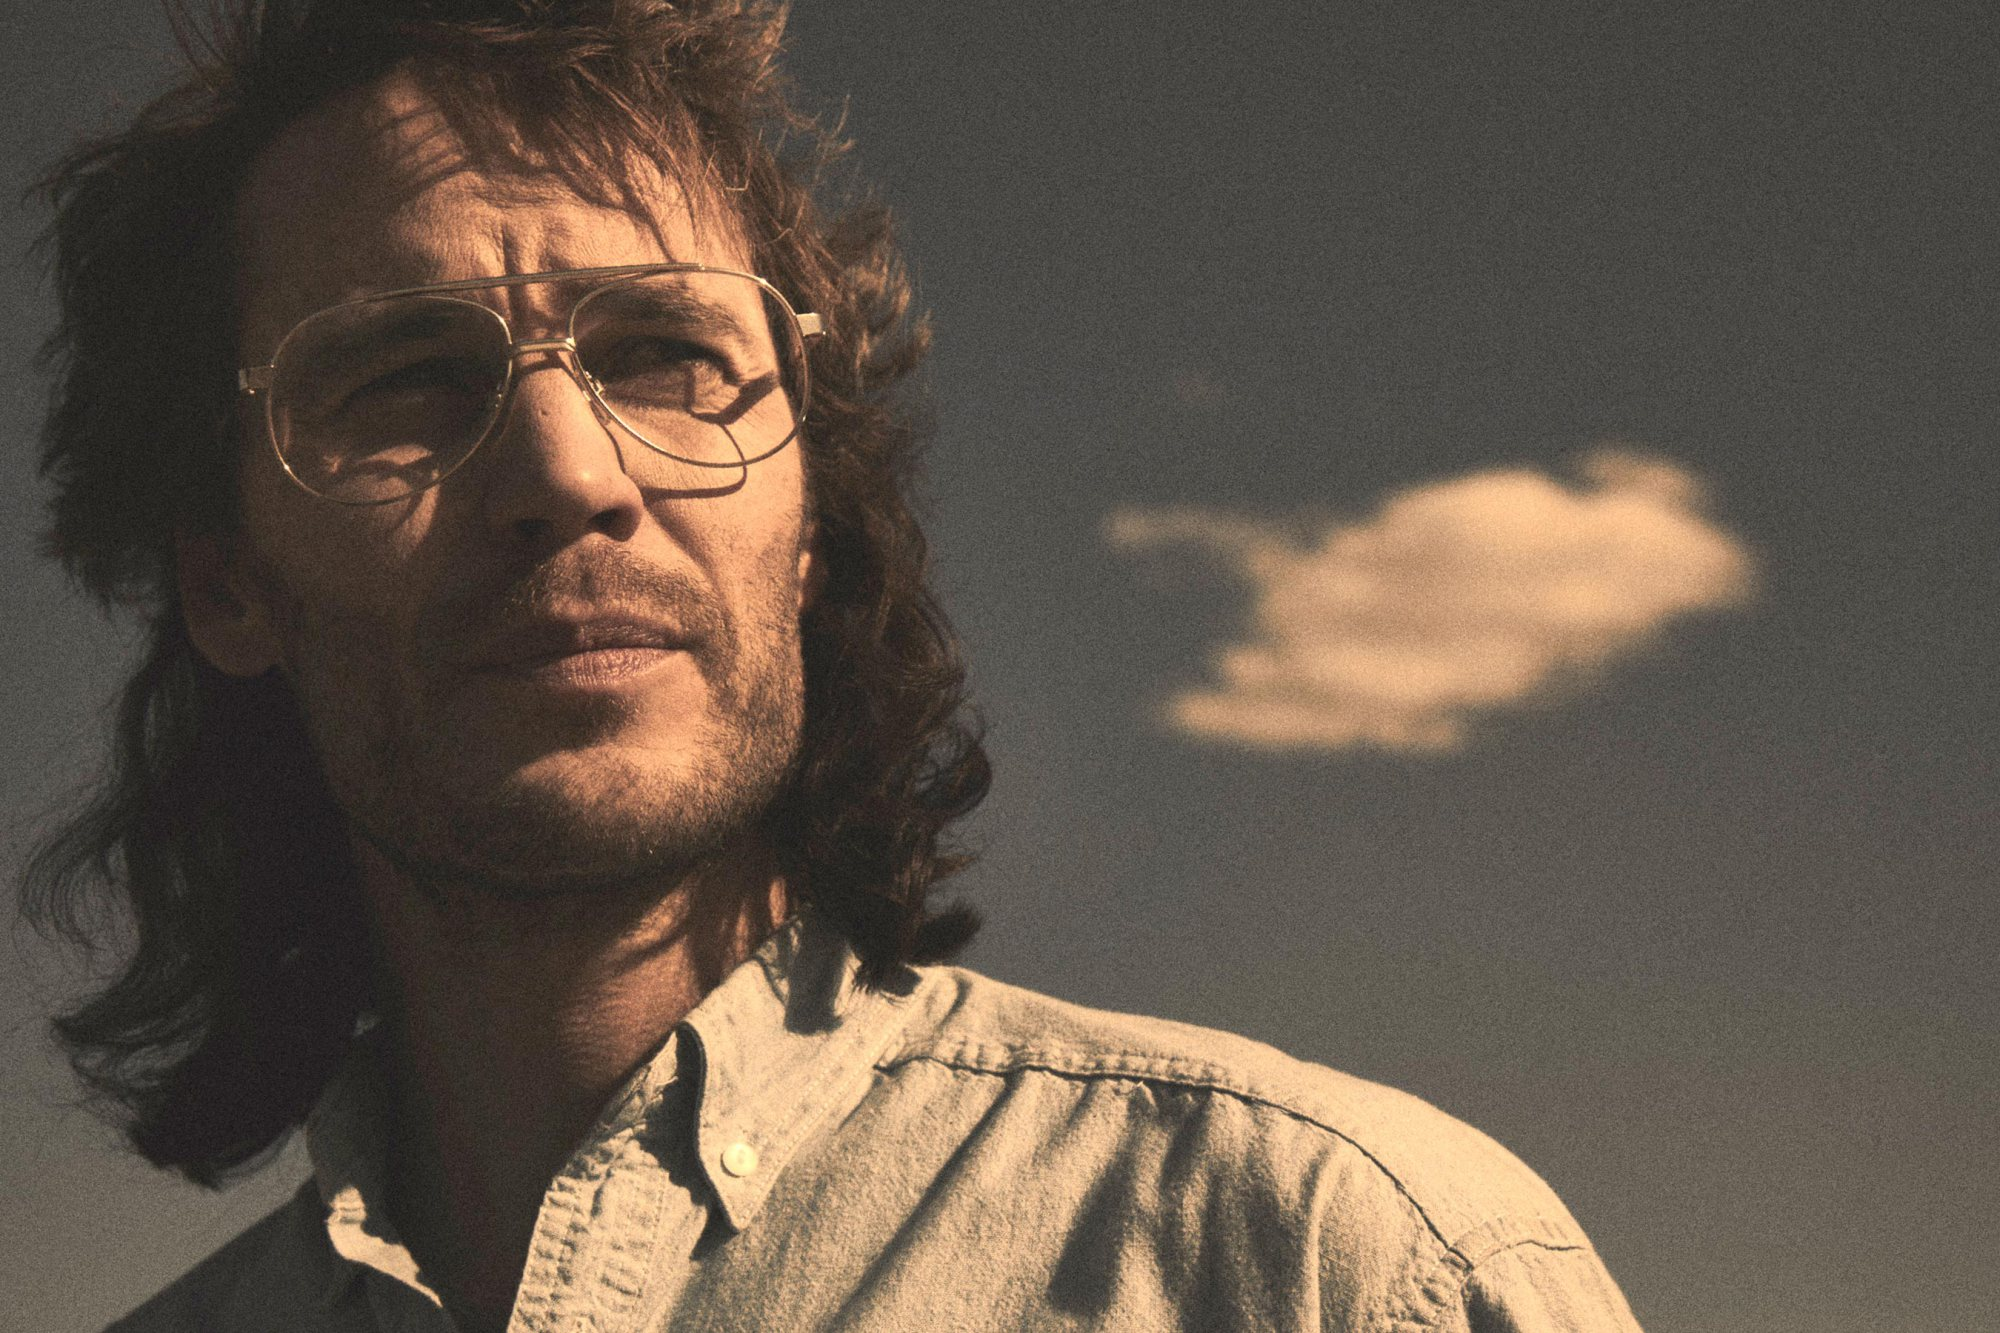 waco Every Show Worth Watching This Winter On Network TV and Basic Cable